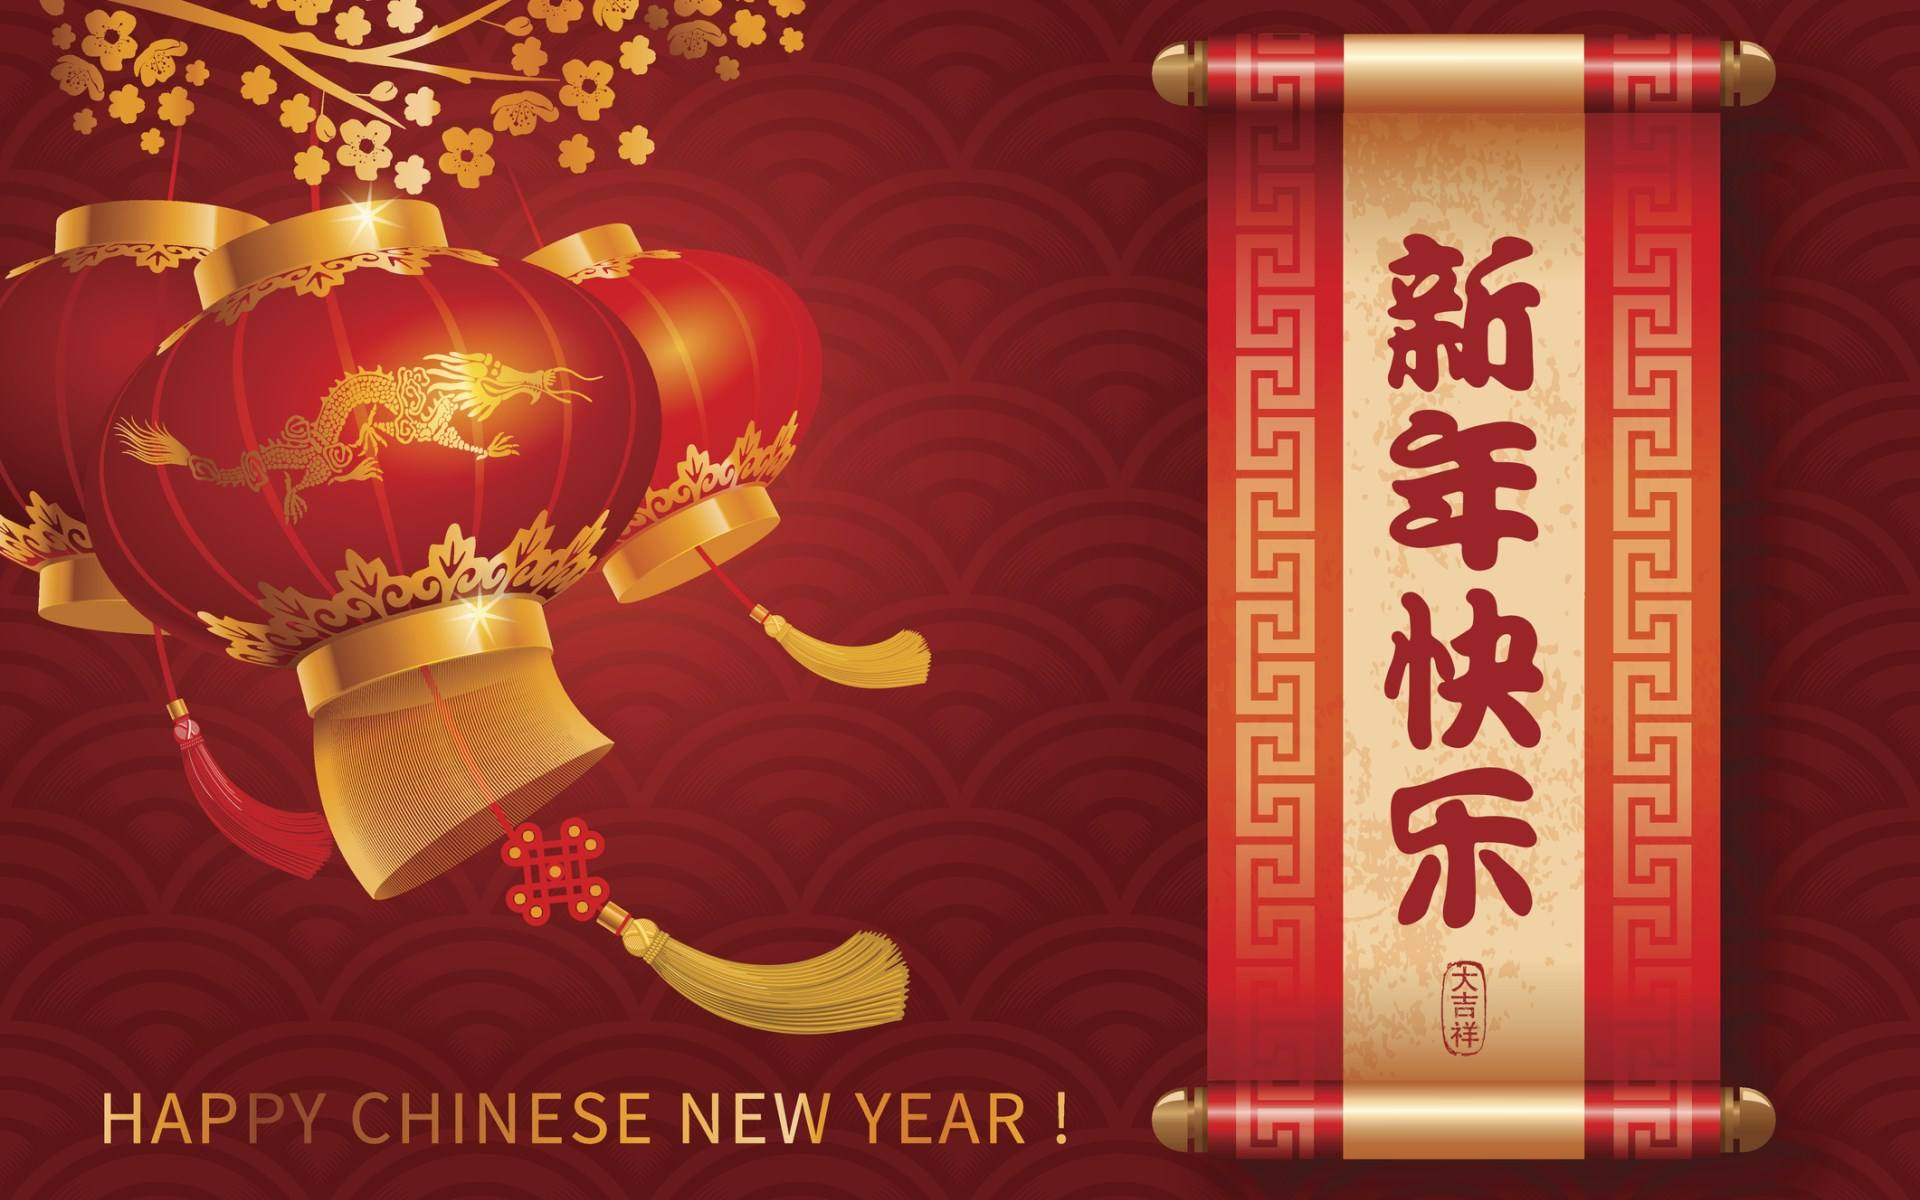 Holiday Notice - Chinese New Year Holiday